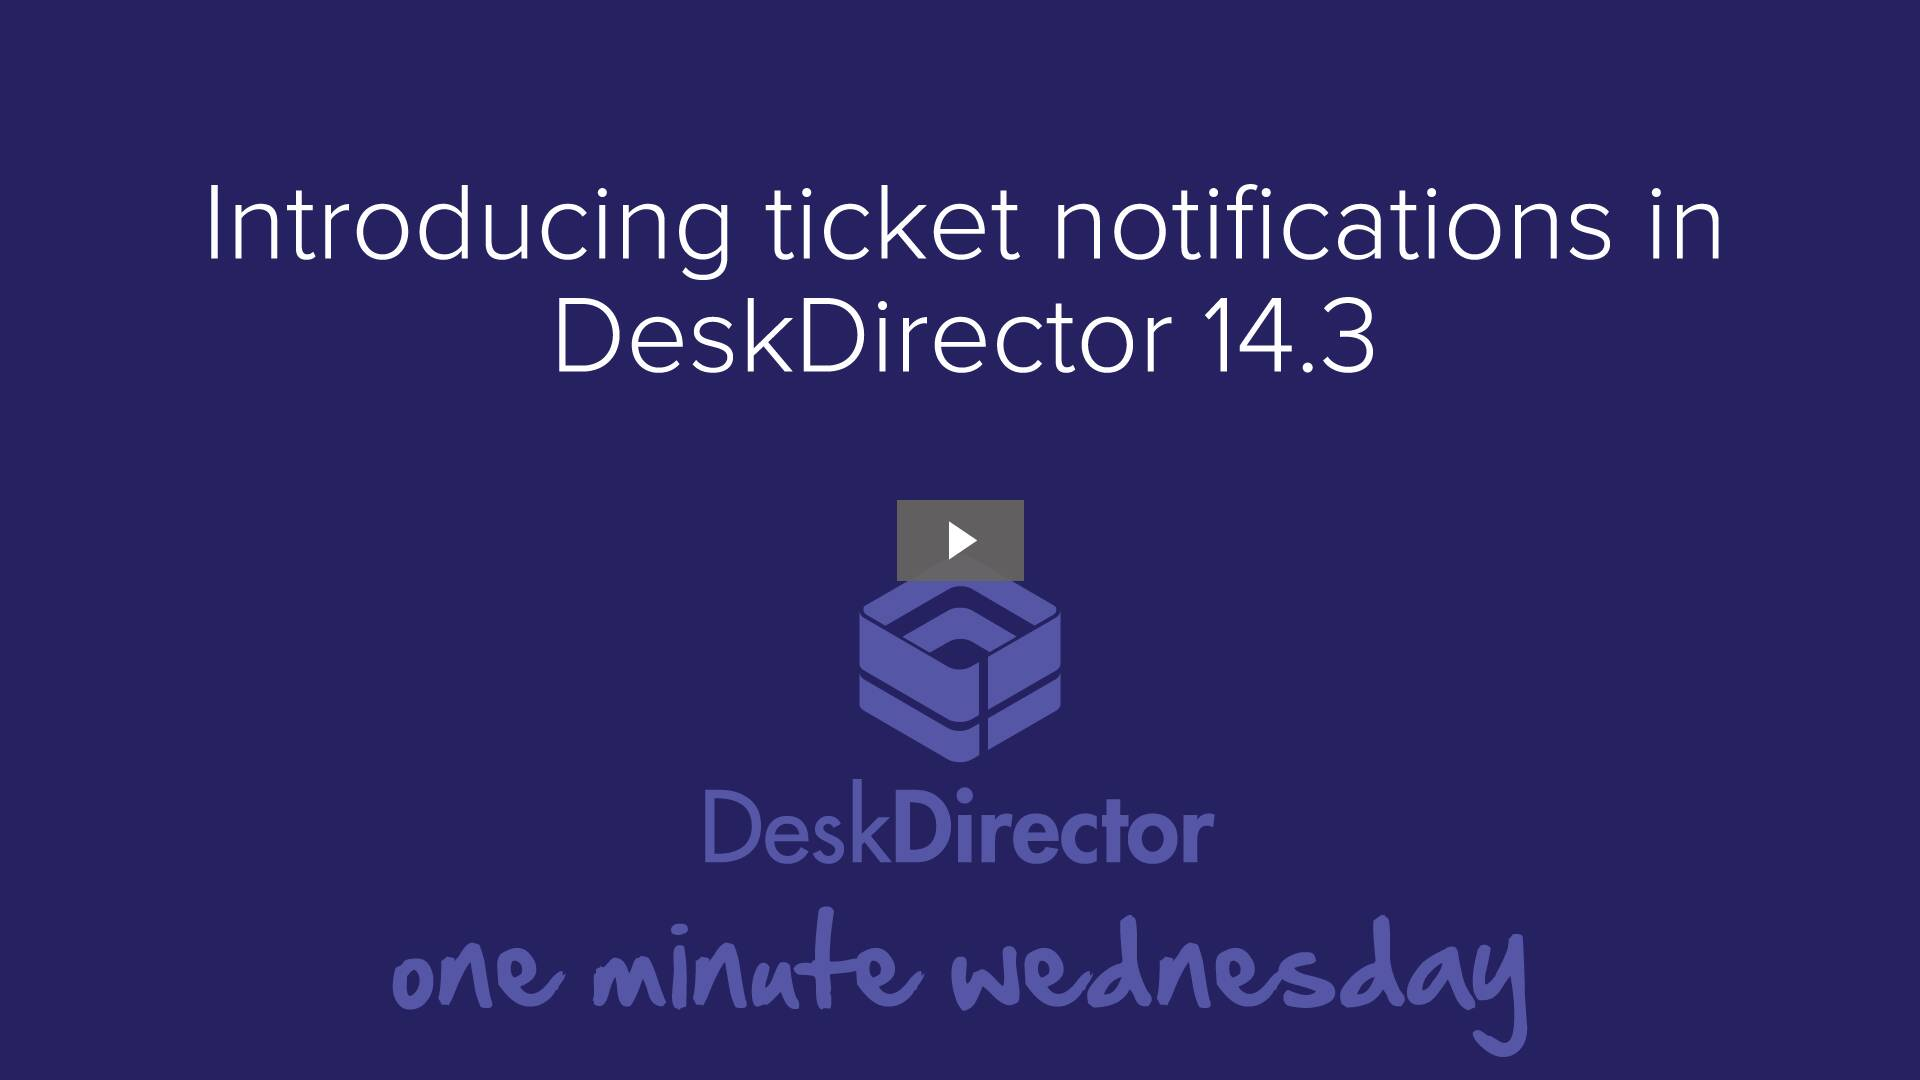 Introducing ticket notifications